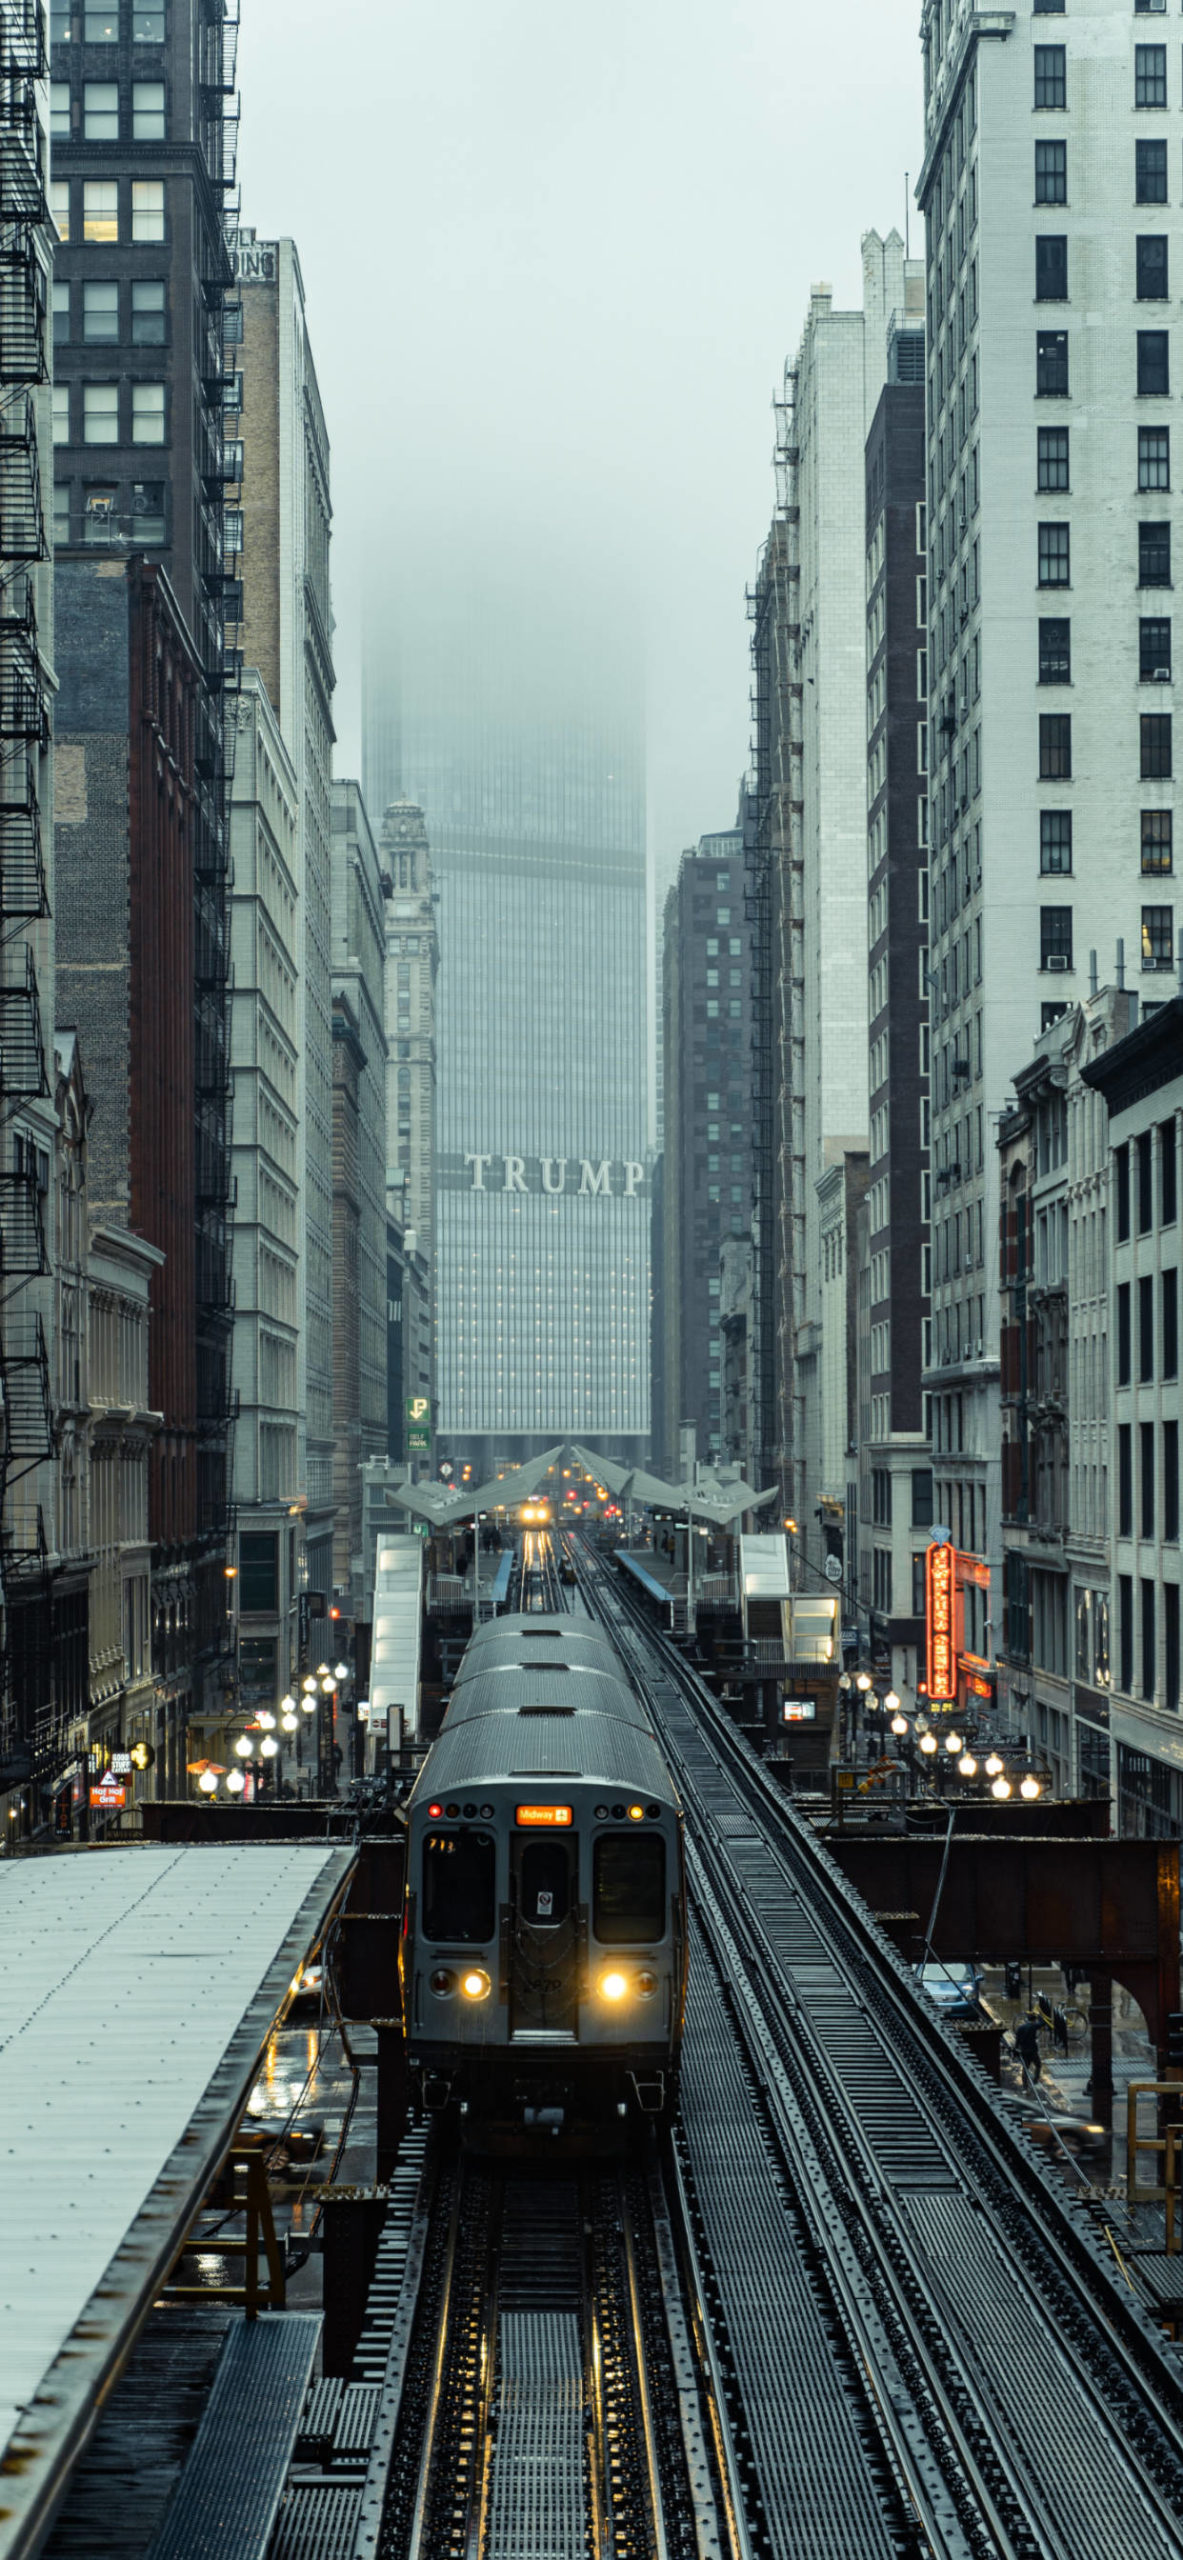 iPhone wallpapers train chicago aerial scaled Train